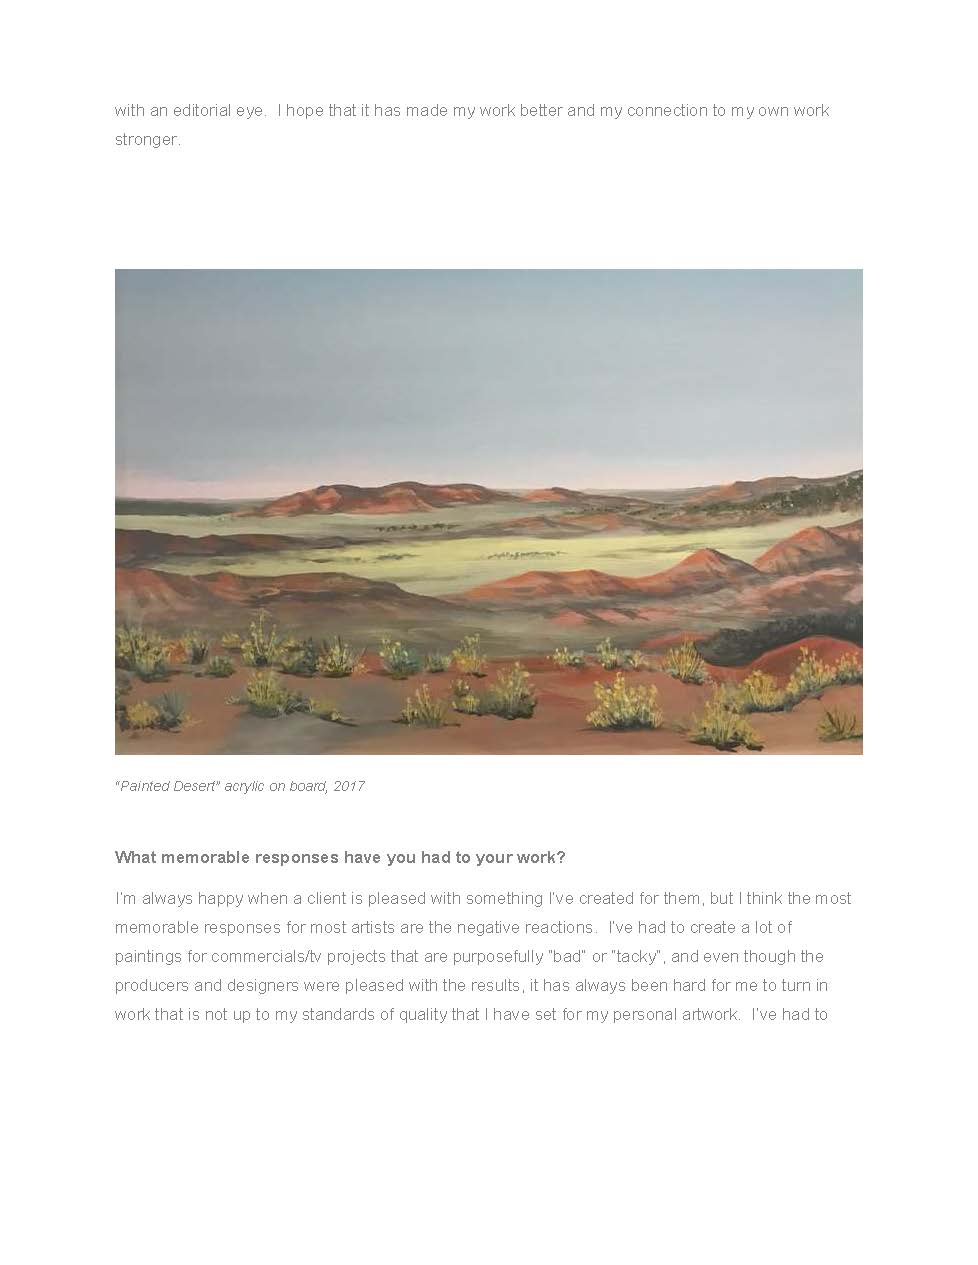 Painting - Painted Desert